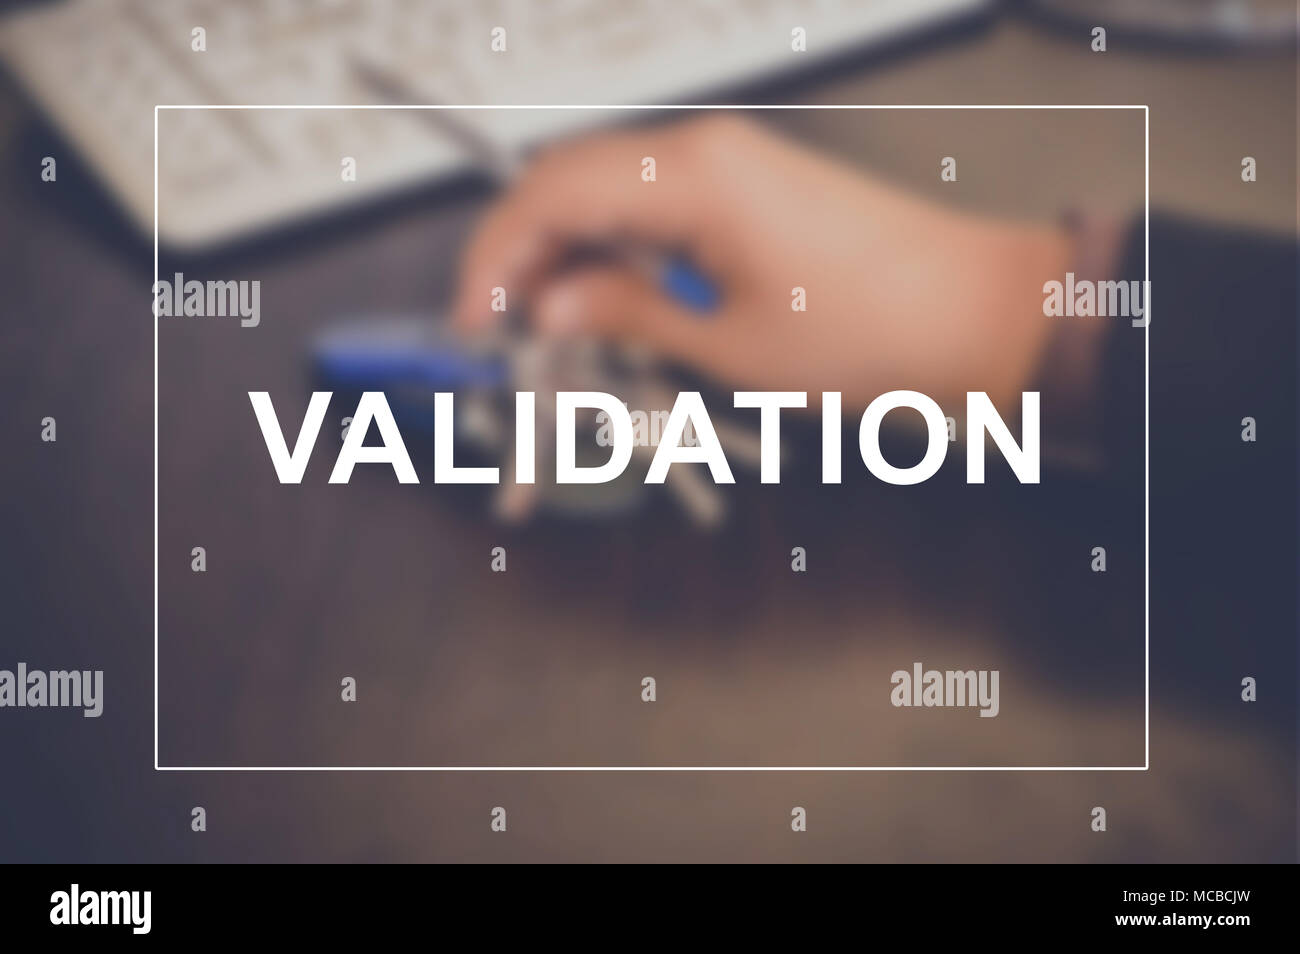 Validation word with business blurring background - Stock Image